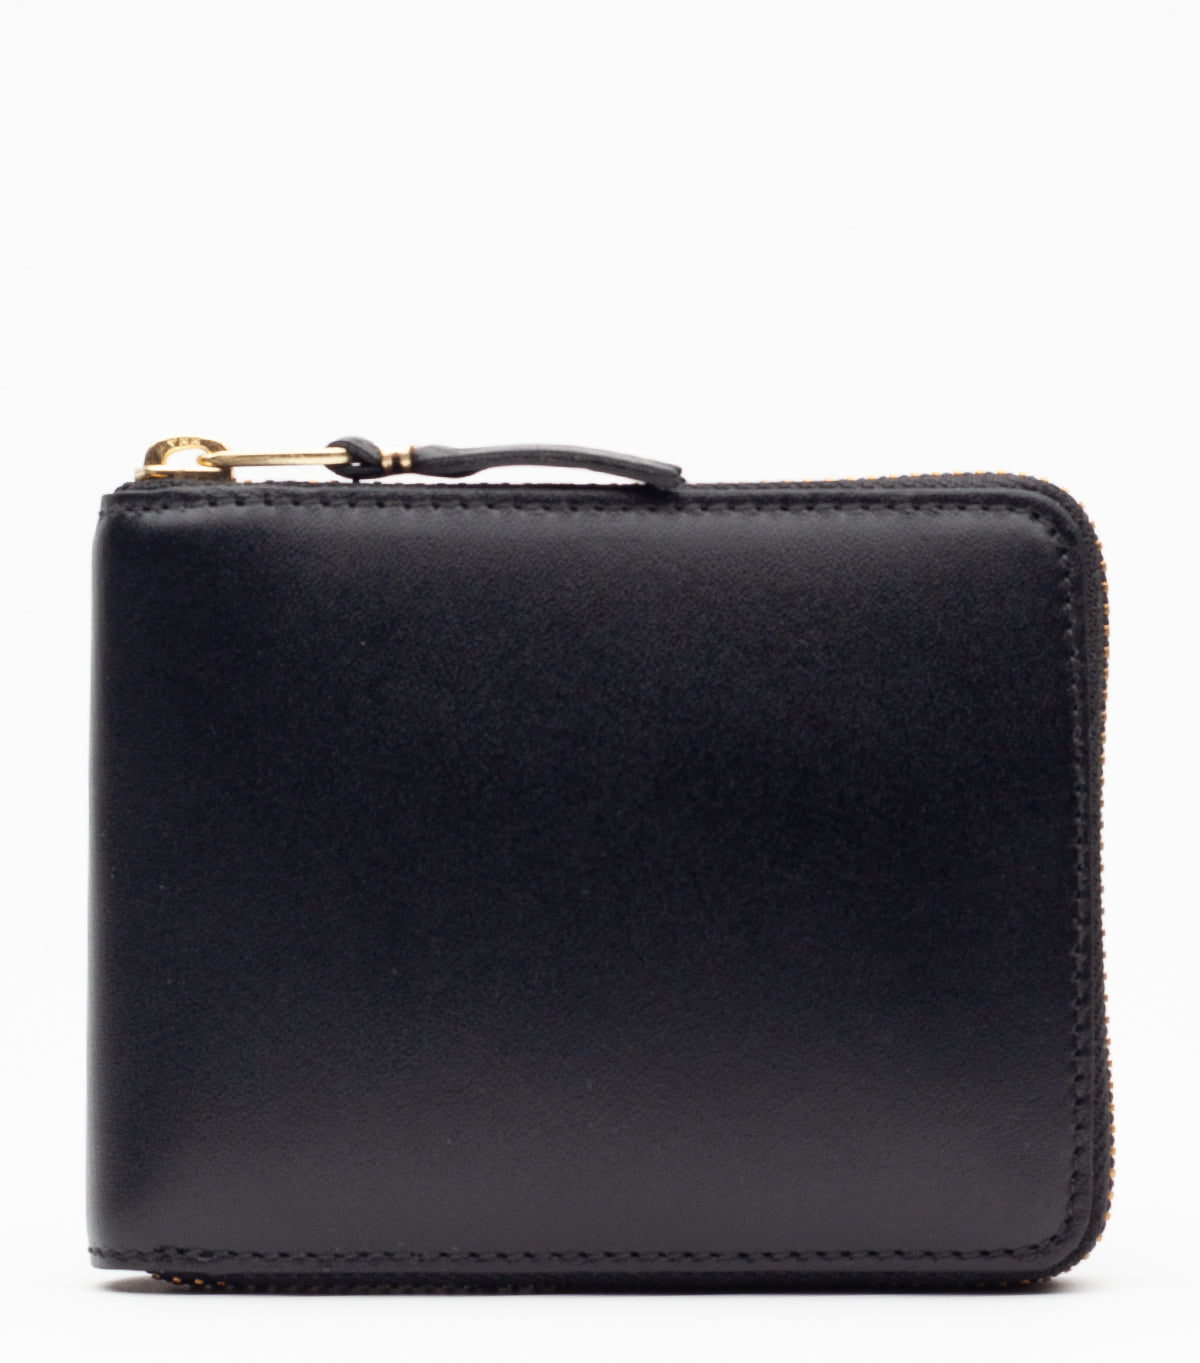 CdG Wallet Classic Leather Line Wallet Black